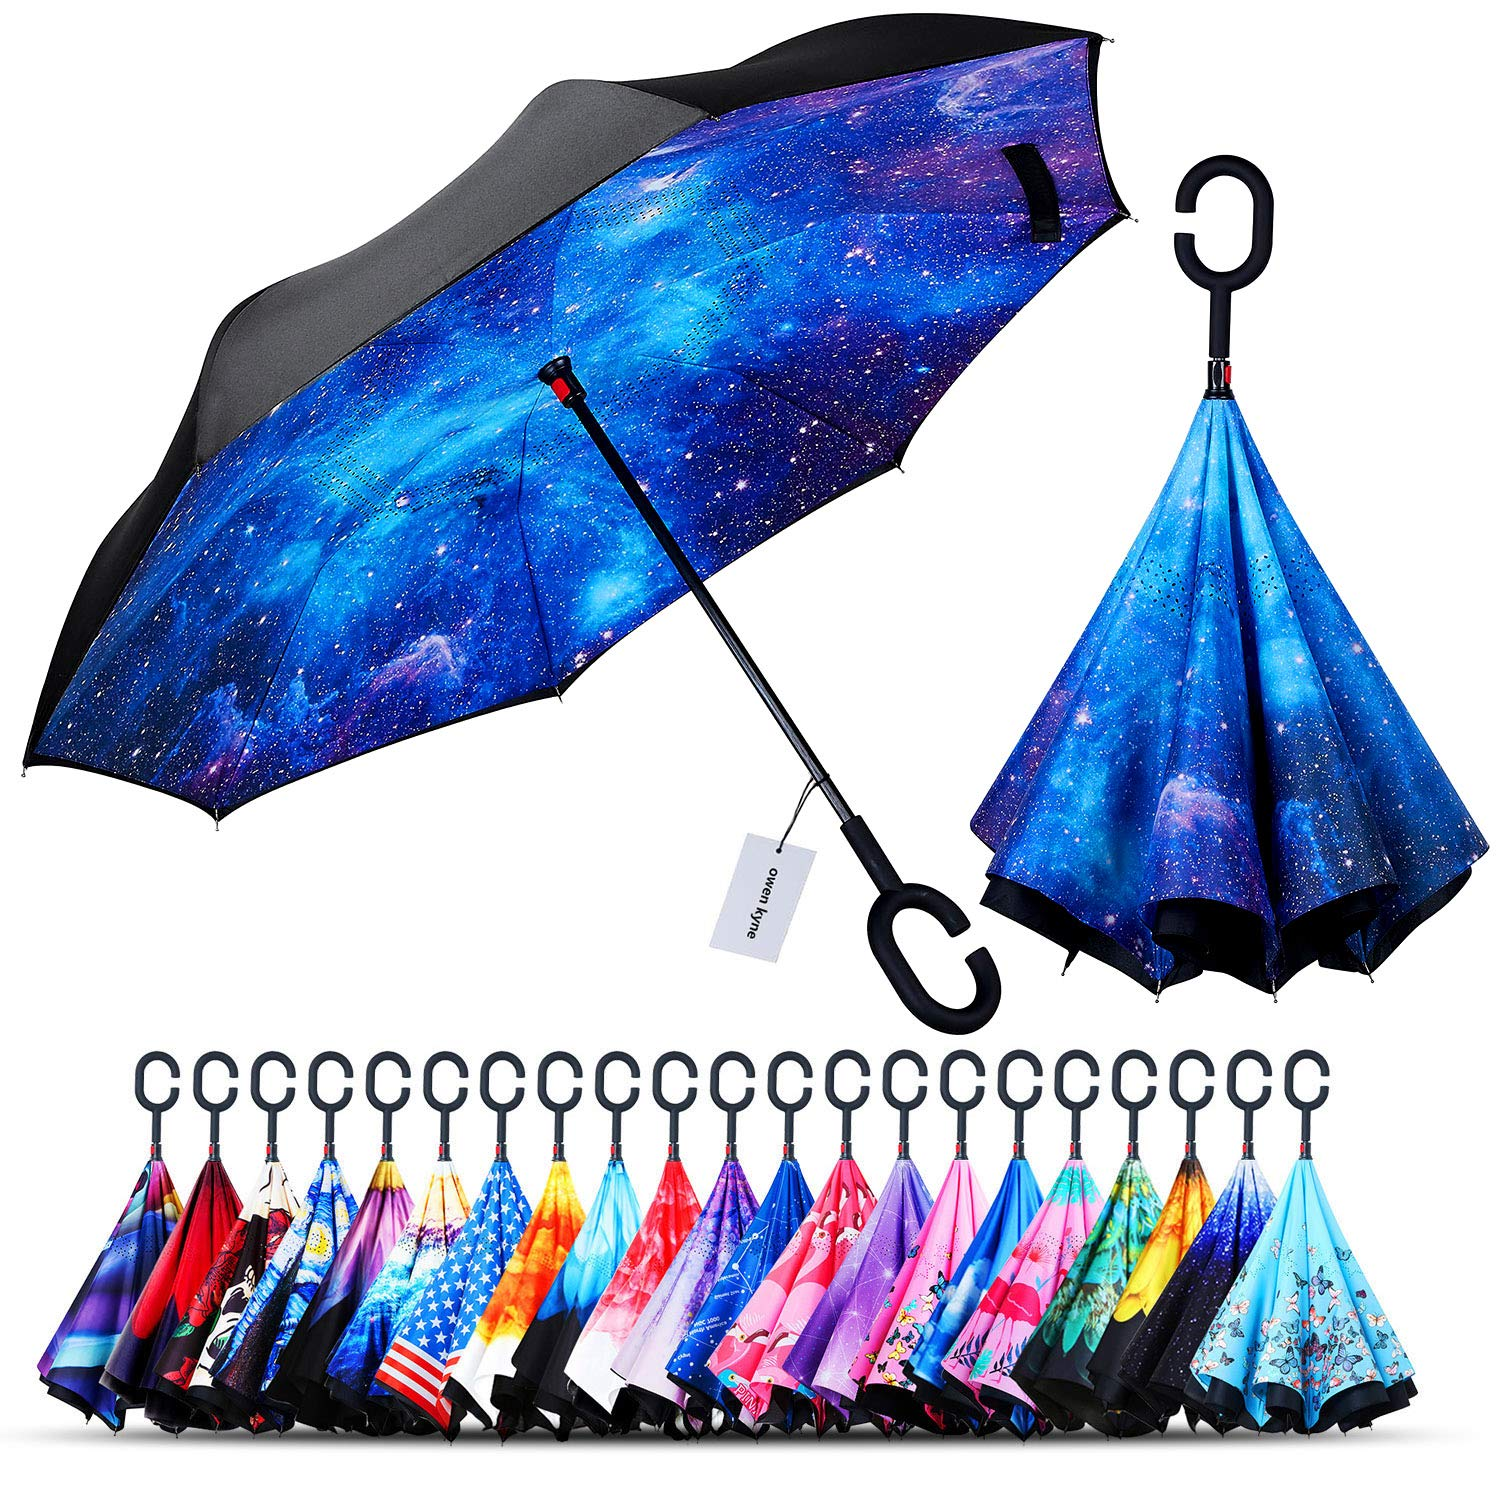 Owen Kyne Windproof Double Layer Folding Inverted Umbrella, Self Stand Upside-Down Rain Protection Car Reverse Umbrellas with C-Shaped Handle (Starry Sky 2) by Owen Kyne